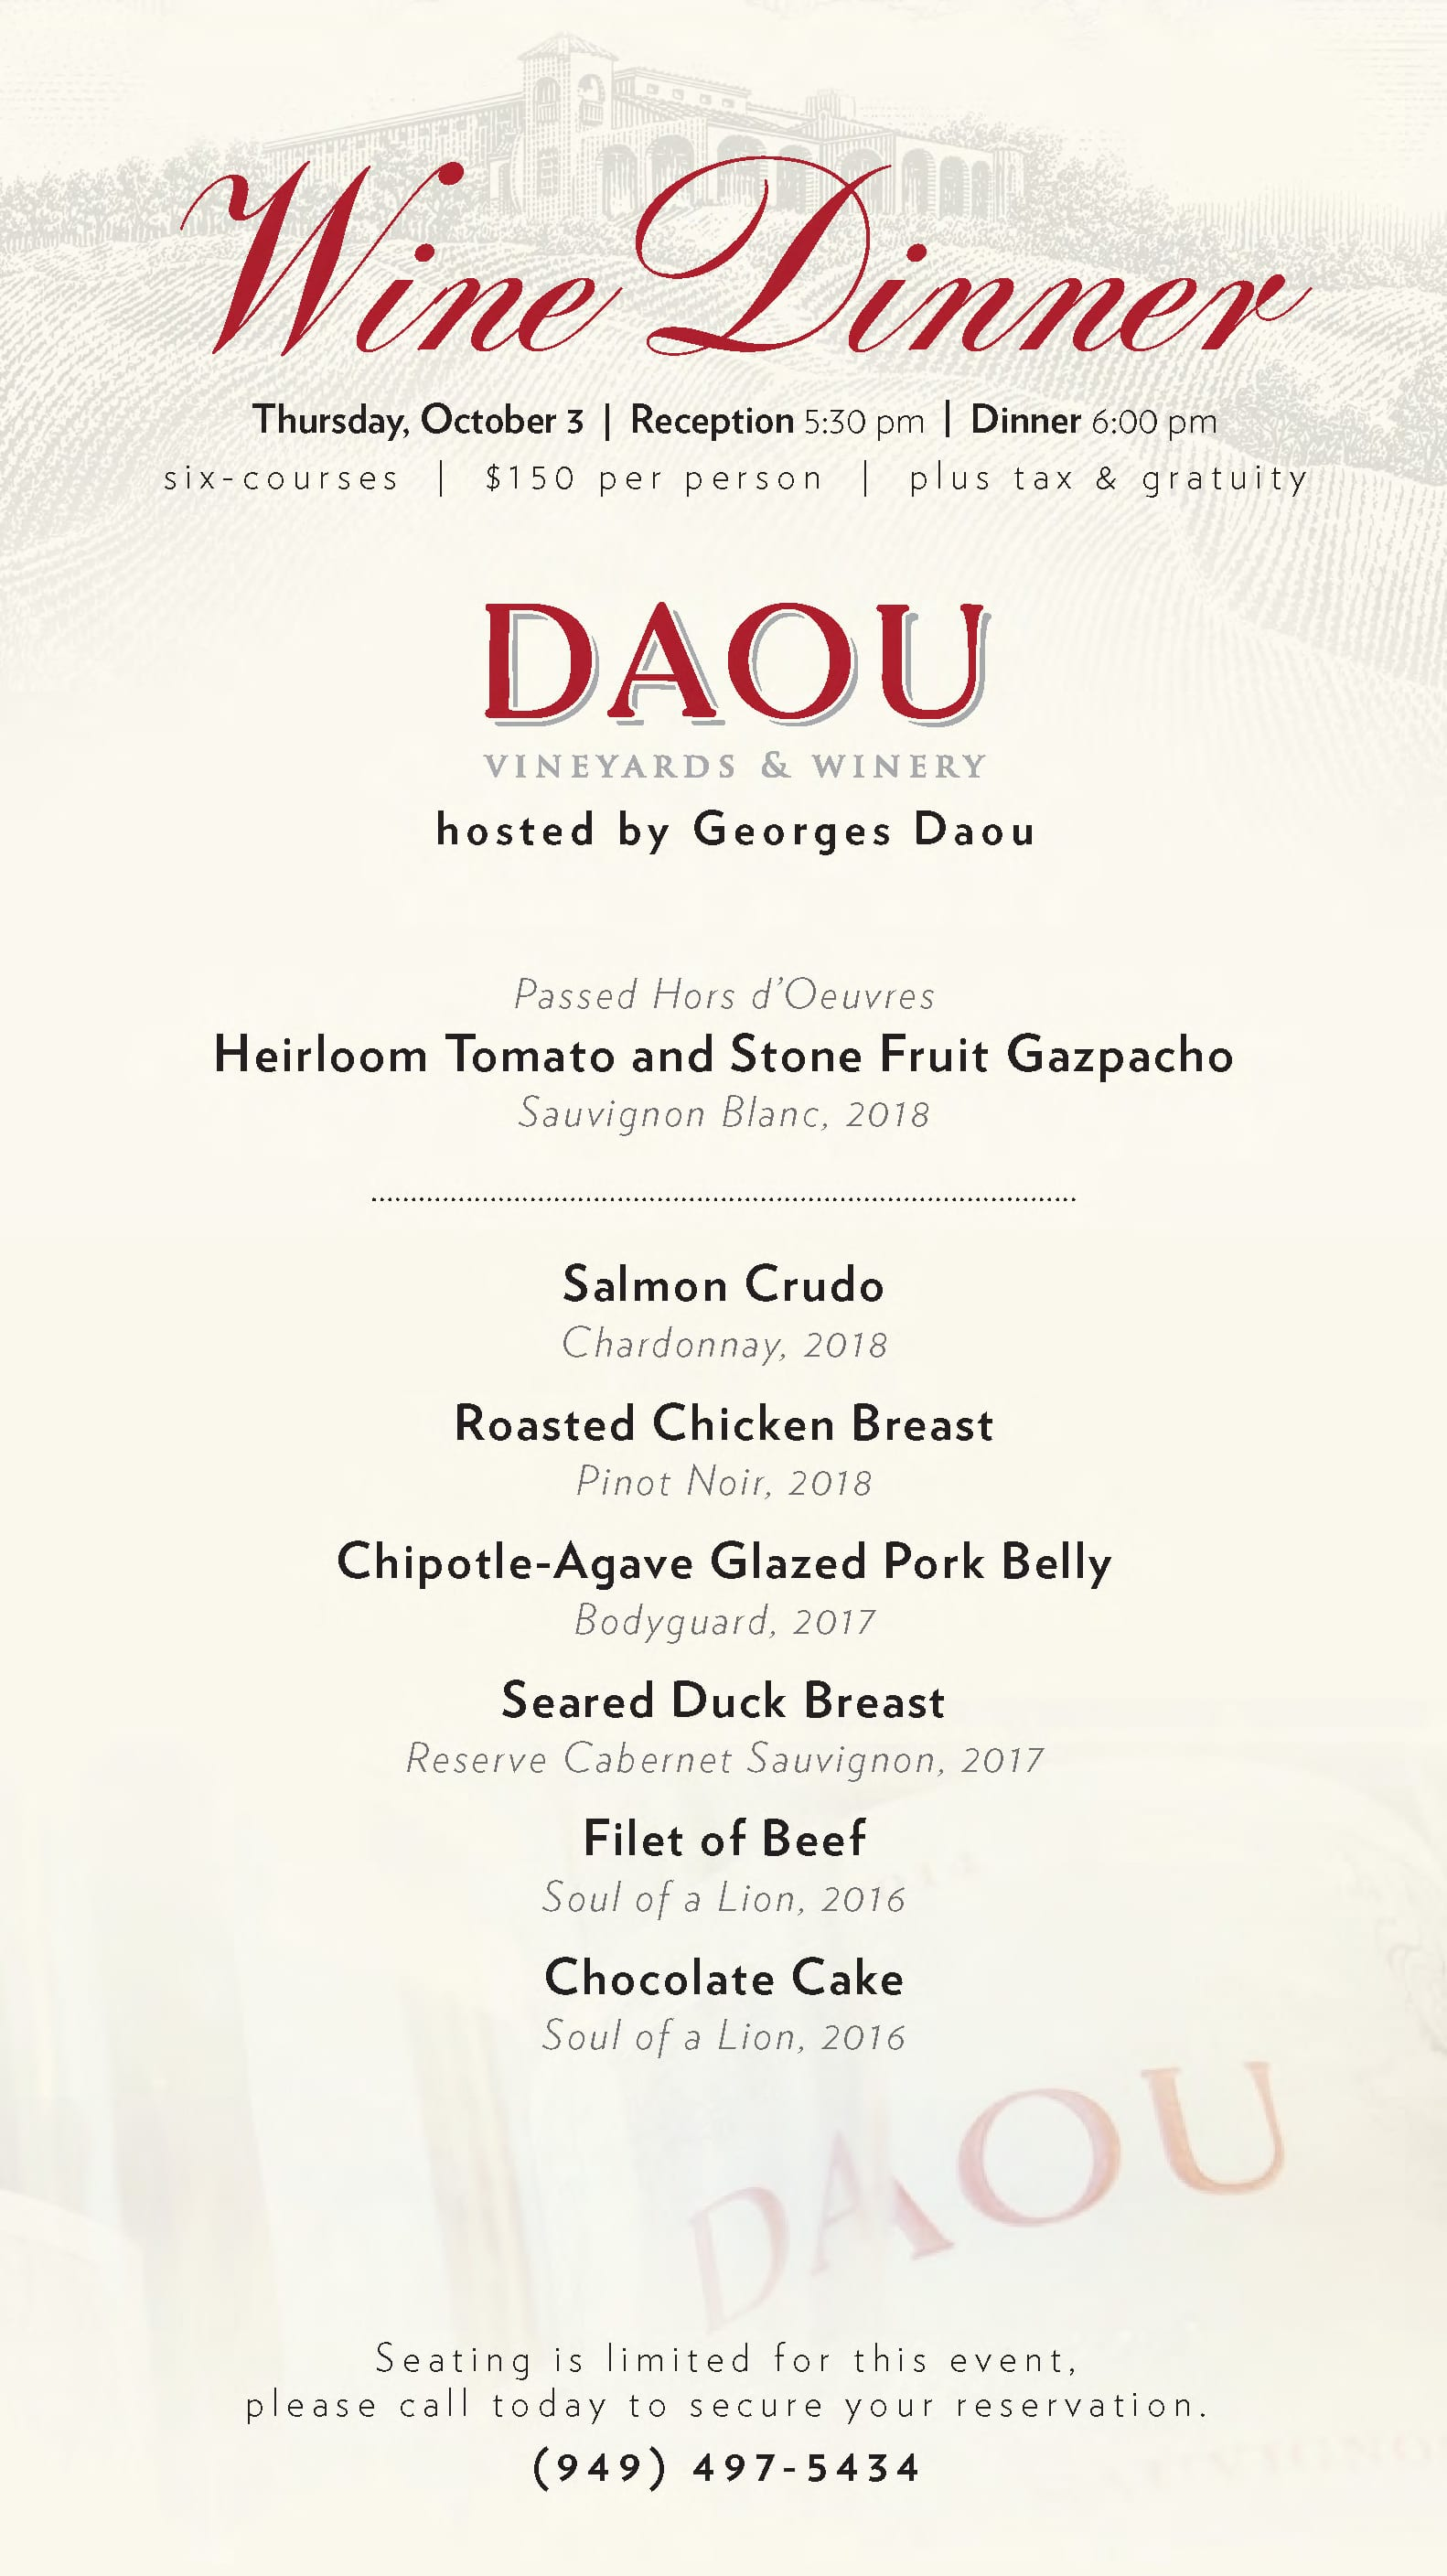 Wine Dinner, Thursday, October 3, Reception 5:30 pm, Dinner 6:00 pm. six-courses, $150 per person plus tax & gratuity. daou vineyards & winery hosted by Georges Daou. Passed Hors d'Oeuvers Heirloom Tomato and Stone Fruir Gazpacho Sauvignon Blanc 2018. Salmon Crudo Chardonnay 2018. Roasted Chicken Breast Pinot Noir 2018. Chipotle-Agave Glazed Pork Belly Bodyguard 2017. Seared Duck Breast Reserve Cabernet Sauvignon 2017. Filet of Beef Soul of a Lion 2016. Chocolate Cake Soul of a Lion 2016. Seating is limited for this event. Please call today to secure your reservation. (949) 497-5434